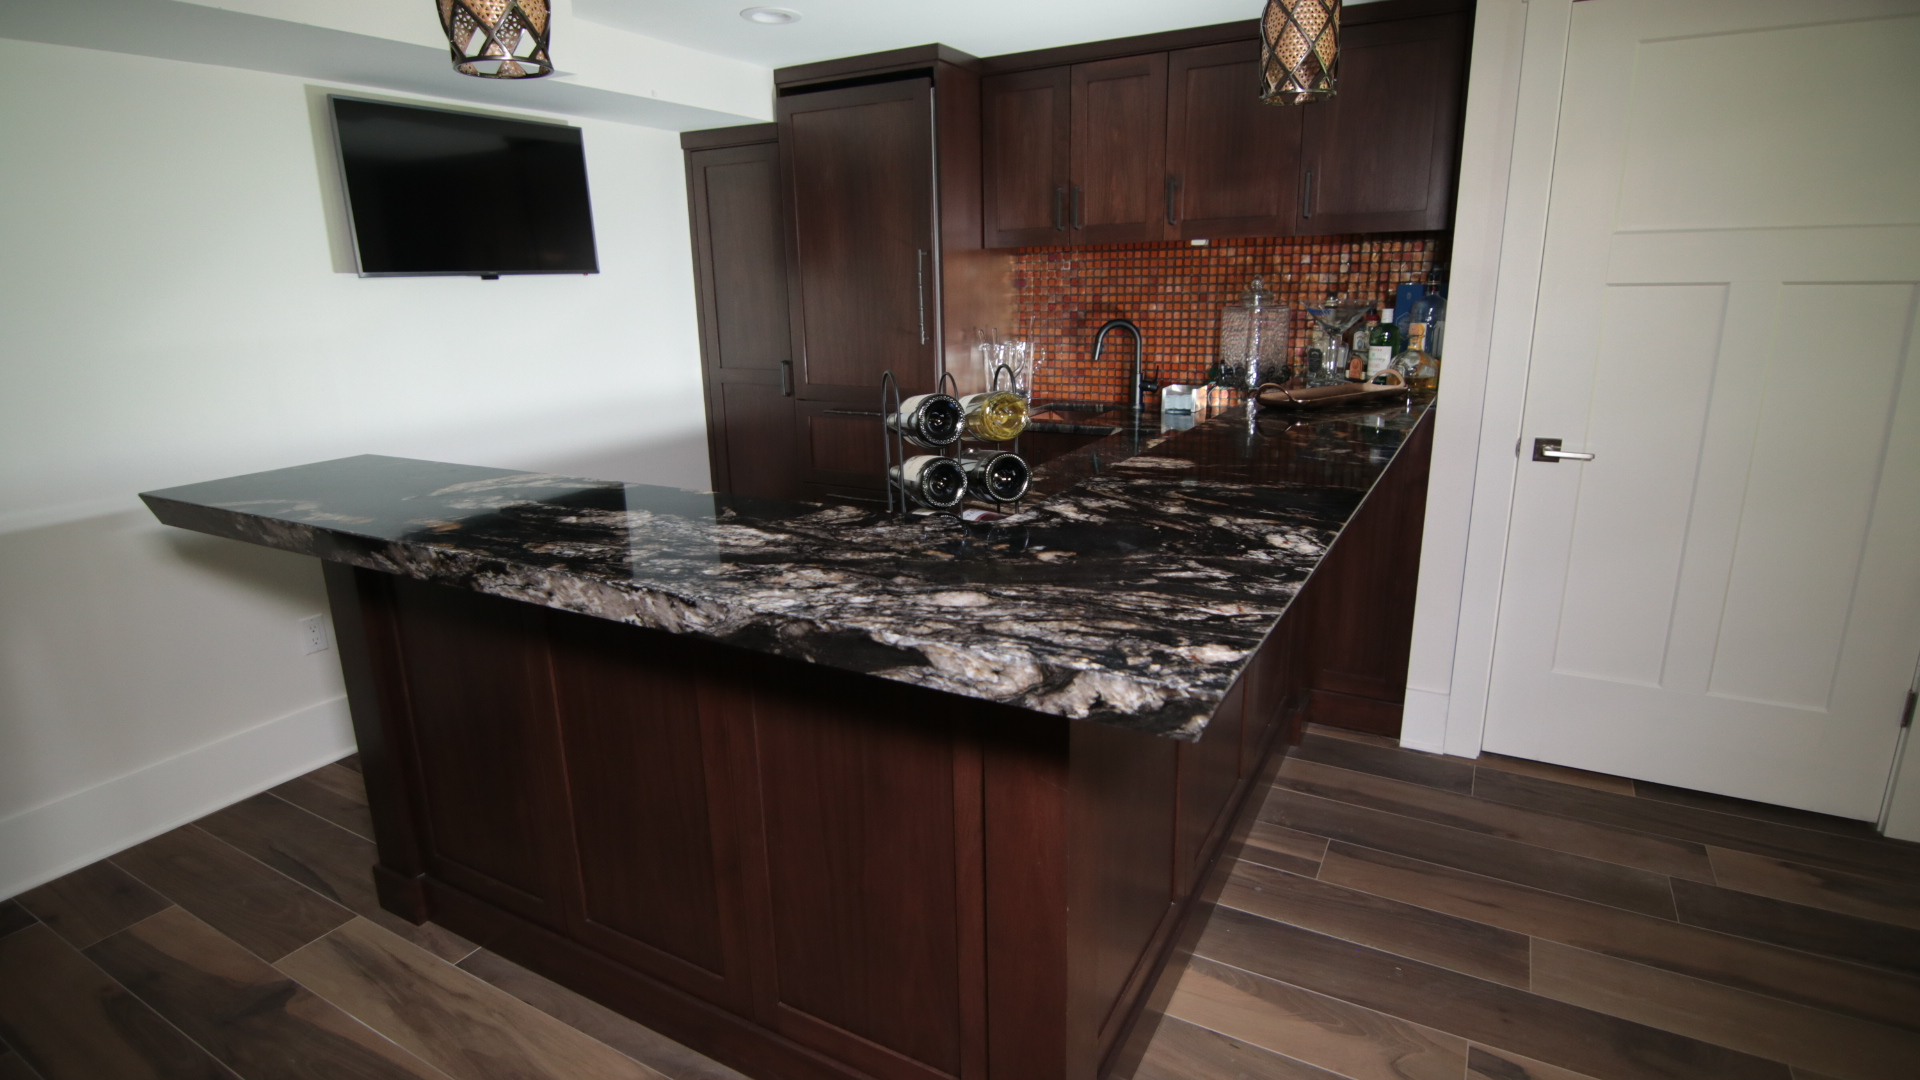 Excellent Reasons Why You Should Get Custom Cabinets Amc Granite Home Interior And Landscaping Oversignezvosmurscom